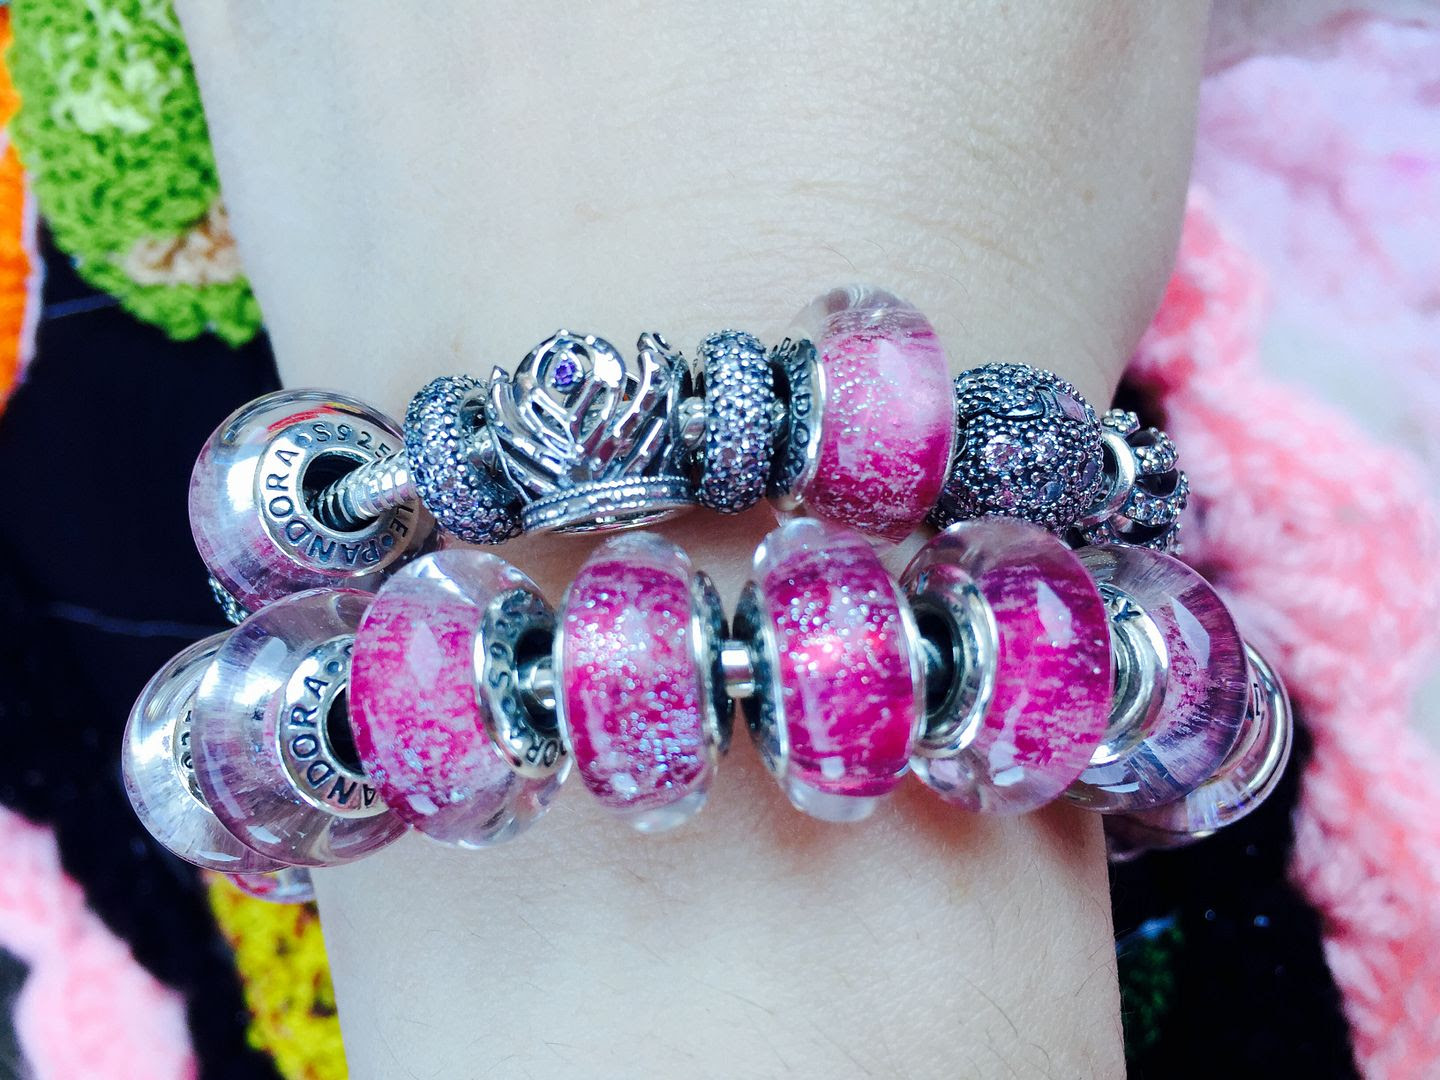 photo pandora jewelry frozen-2_zps4wvxrud5.jpg